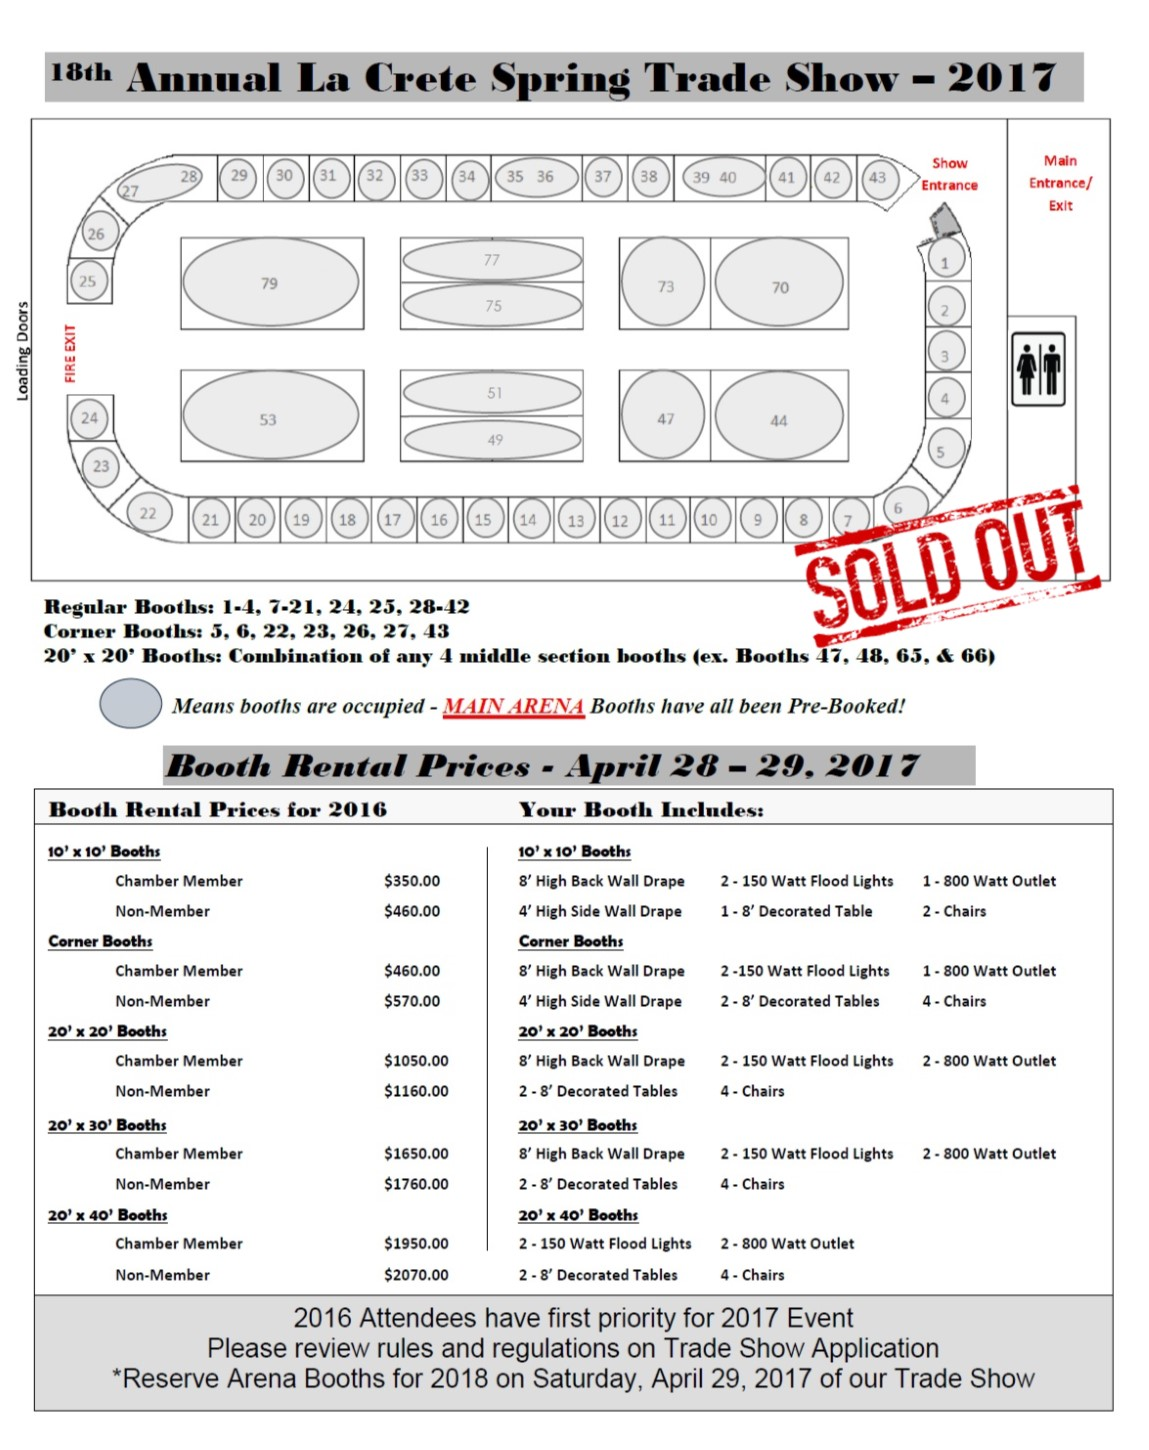 Main Arena Layout & Booth Pricing 2017 SOLD OUT